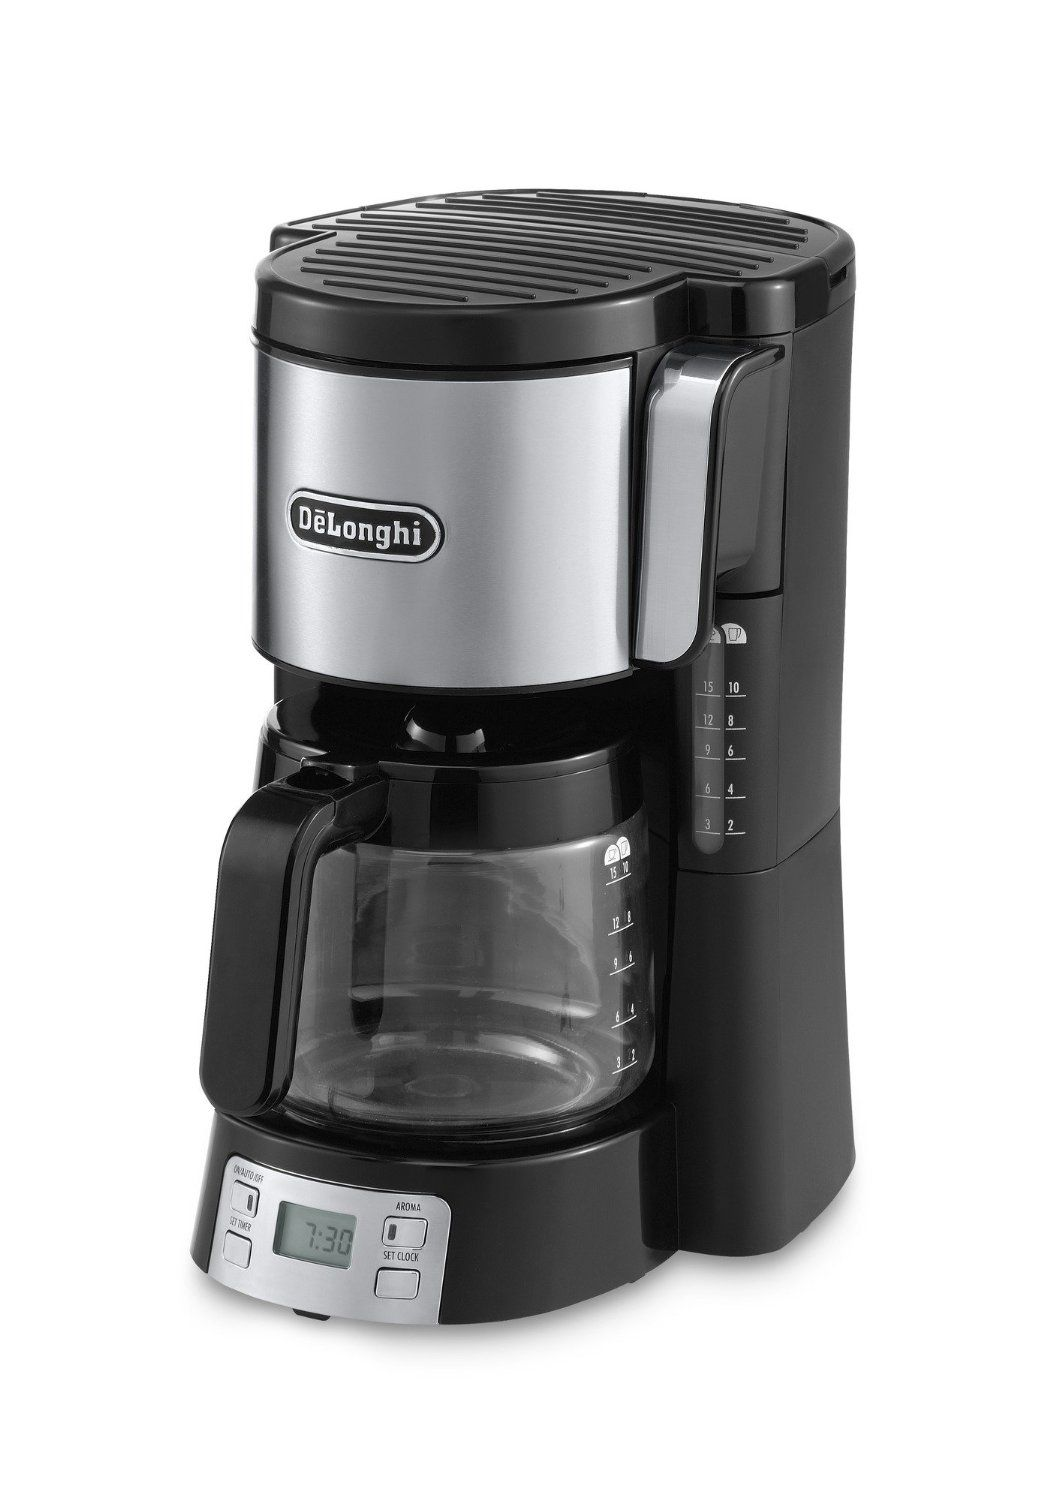 Delonghi Coffee Maker Ec7 : Delonghi Drip Coffee Machine ICM15250